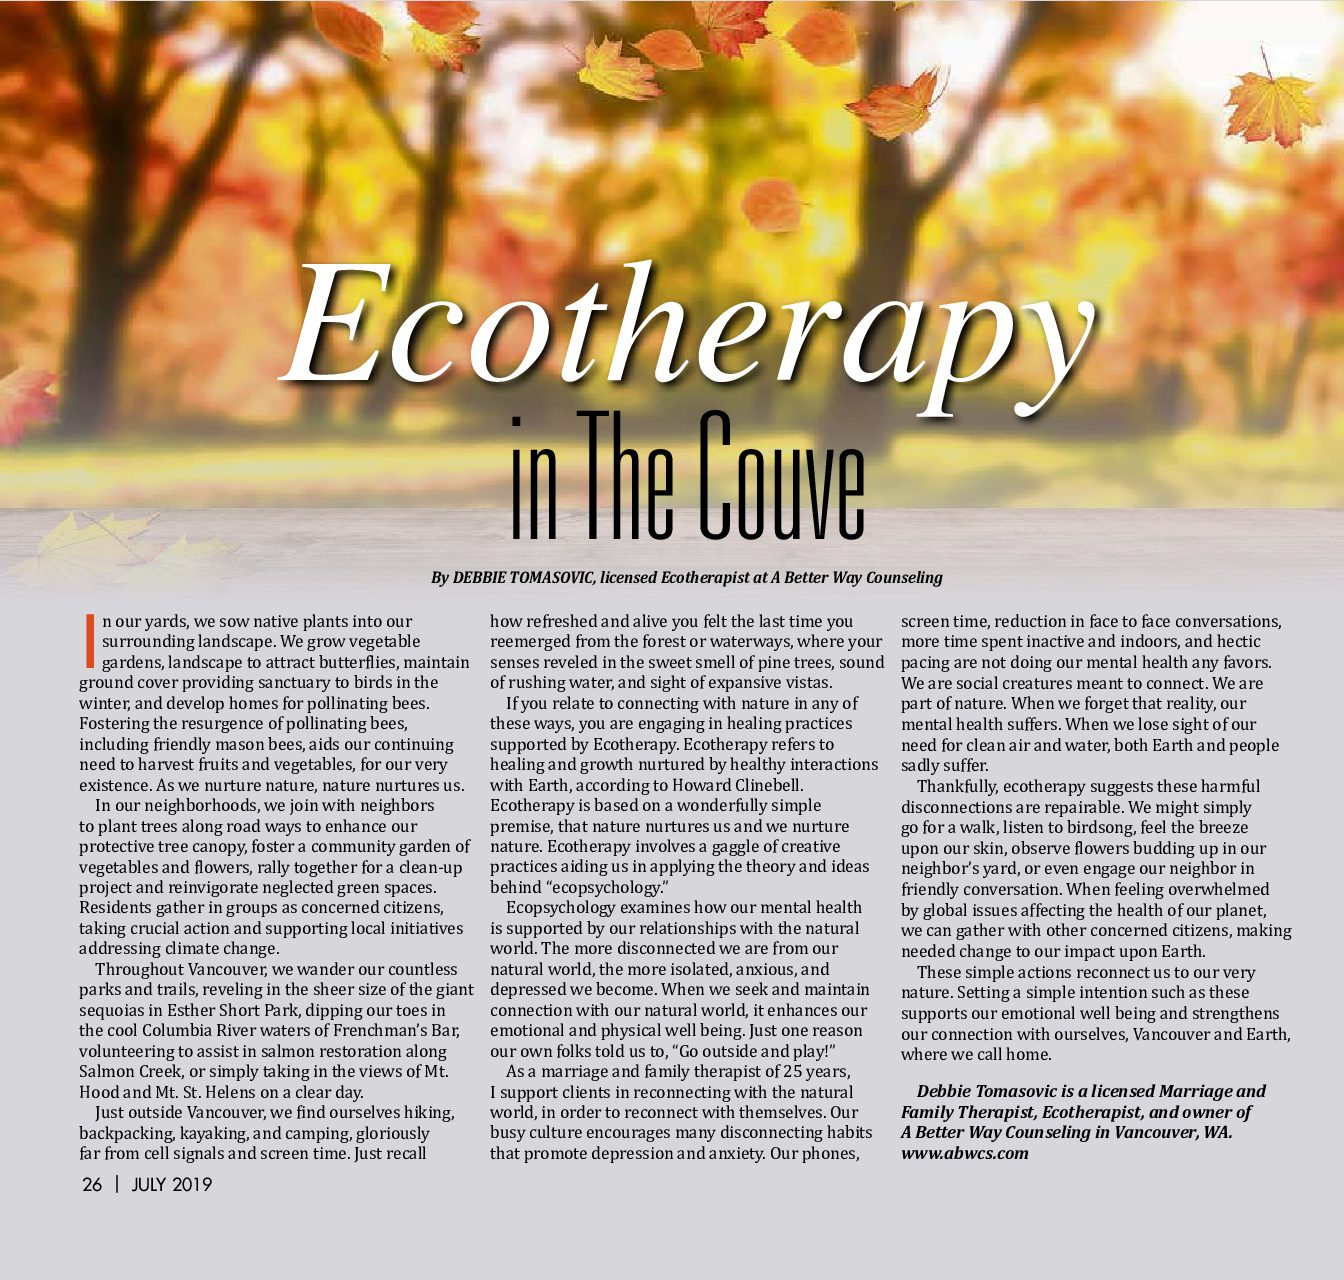 Ecotherapy in The Couve